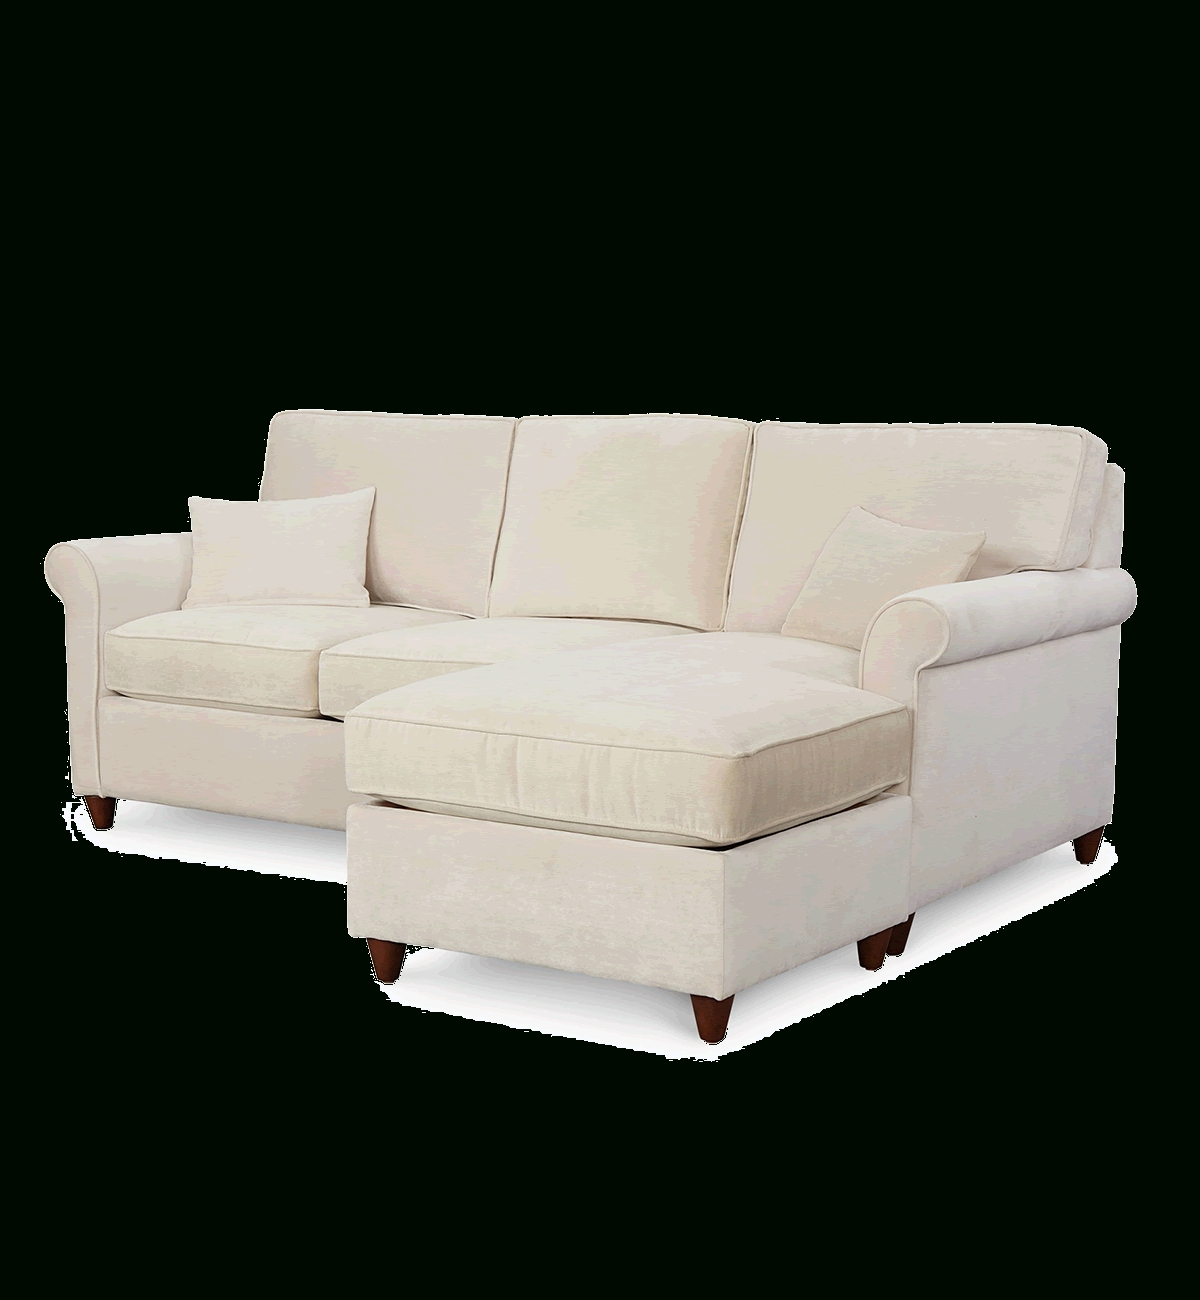 The Best Macys Sofas Couches And Sofas     Macy s Inside Well Liked Macys Sofas  View 7 of